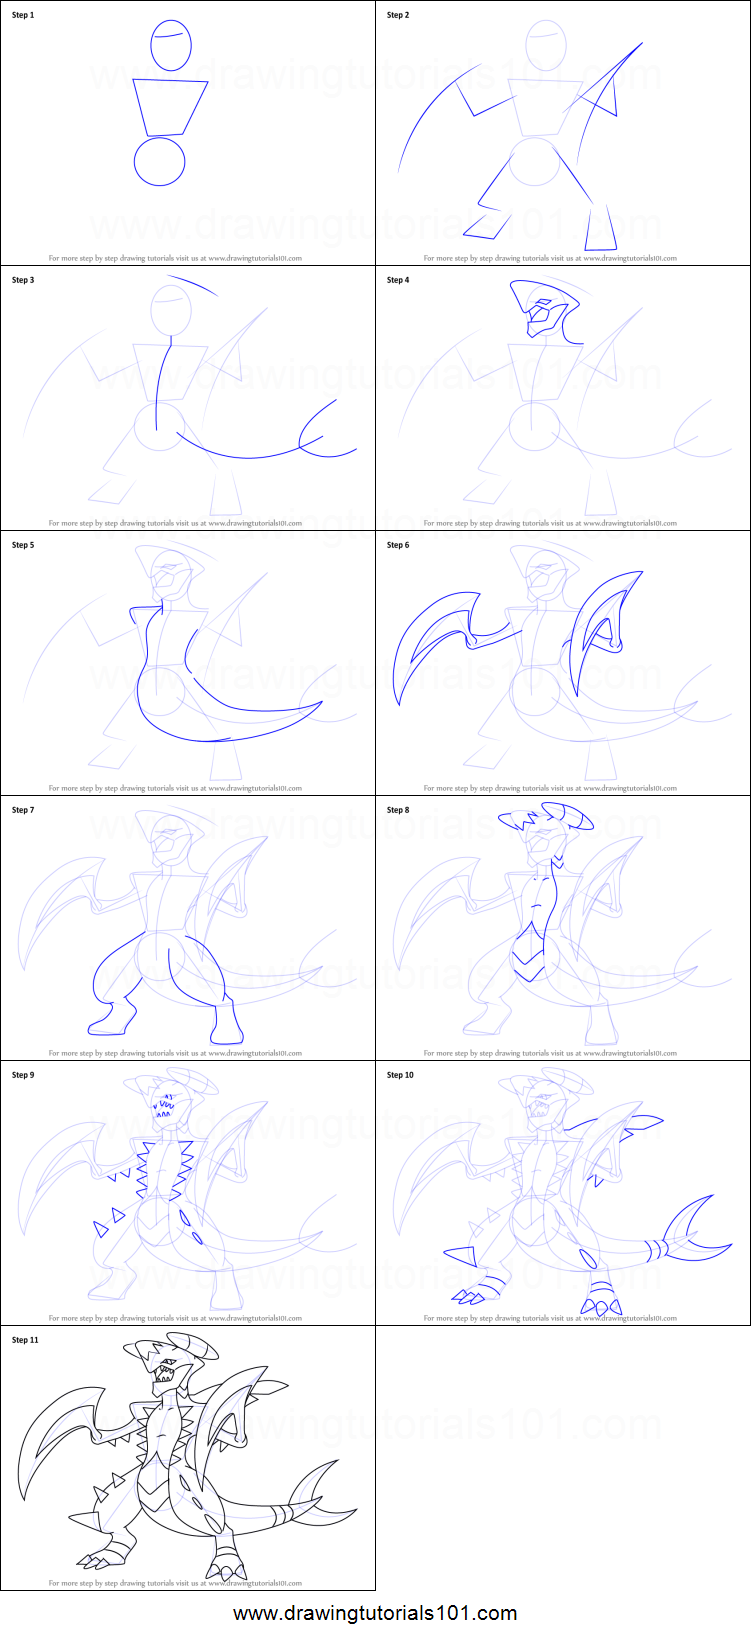 How to Draw Garchomp from Pokemon printable step by step ...